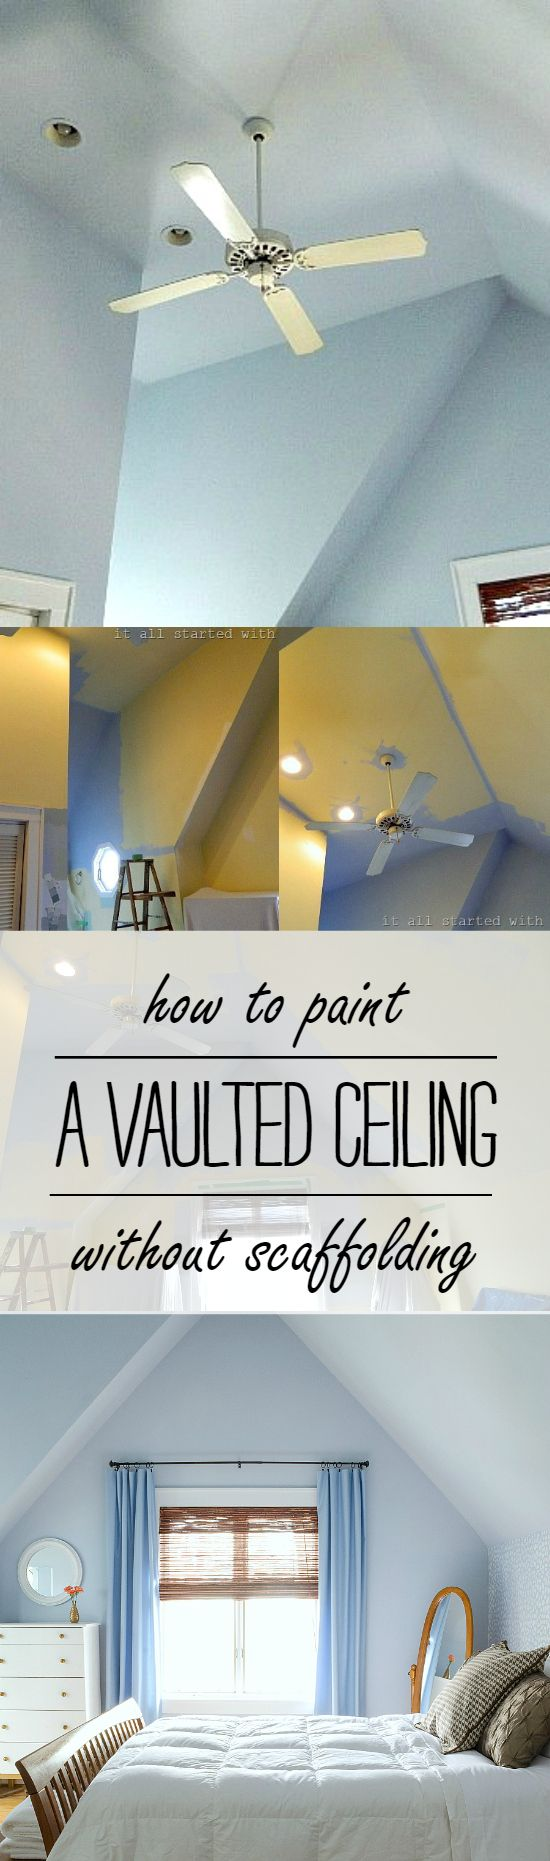 Best 25 vaulted ceiling decor ideas on pinterest for How to paint a vaulted ceiling room